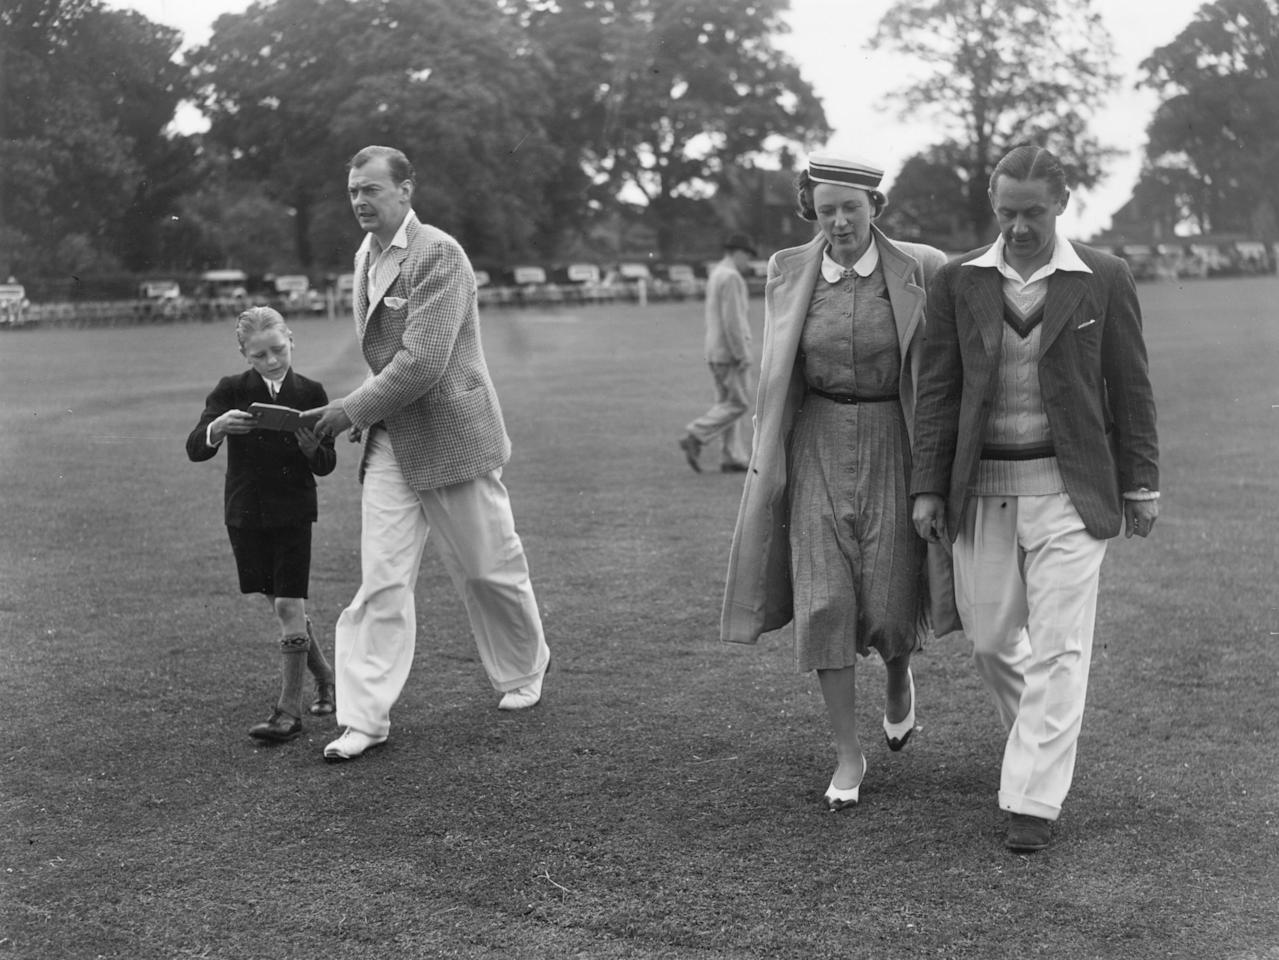 19th July 1939:  Ian Peebles (1908- 1980) cricket (bowler) player for Middlesex and England (1927 - 1931) returning an autograph book to a boy fan. Mrs A P F Chapman and George 'Gubby'Allen (1902 - 1989)  cricket player for Middlesex and England (1930 - 1948), Knighted in 1986.  (Photo by J. A. Hampton/Topical Press Agency/Getty Images)